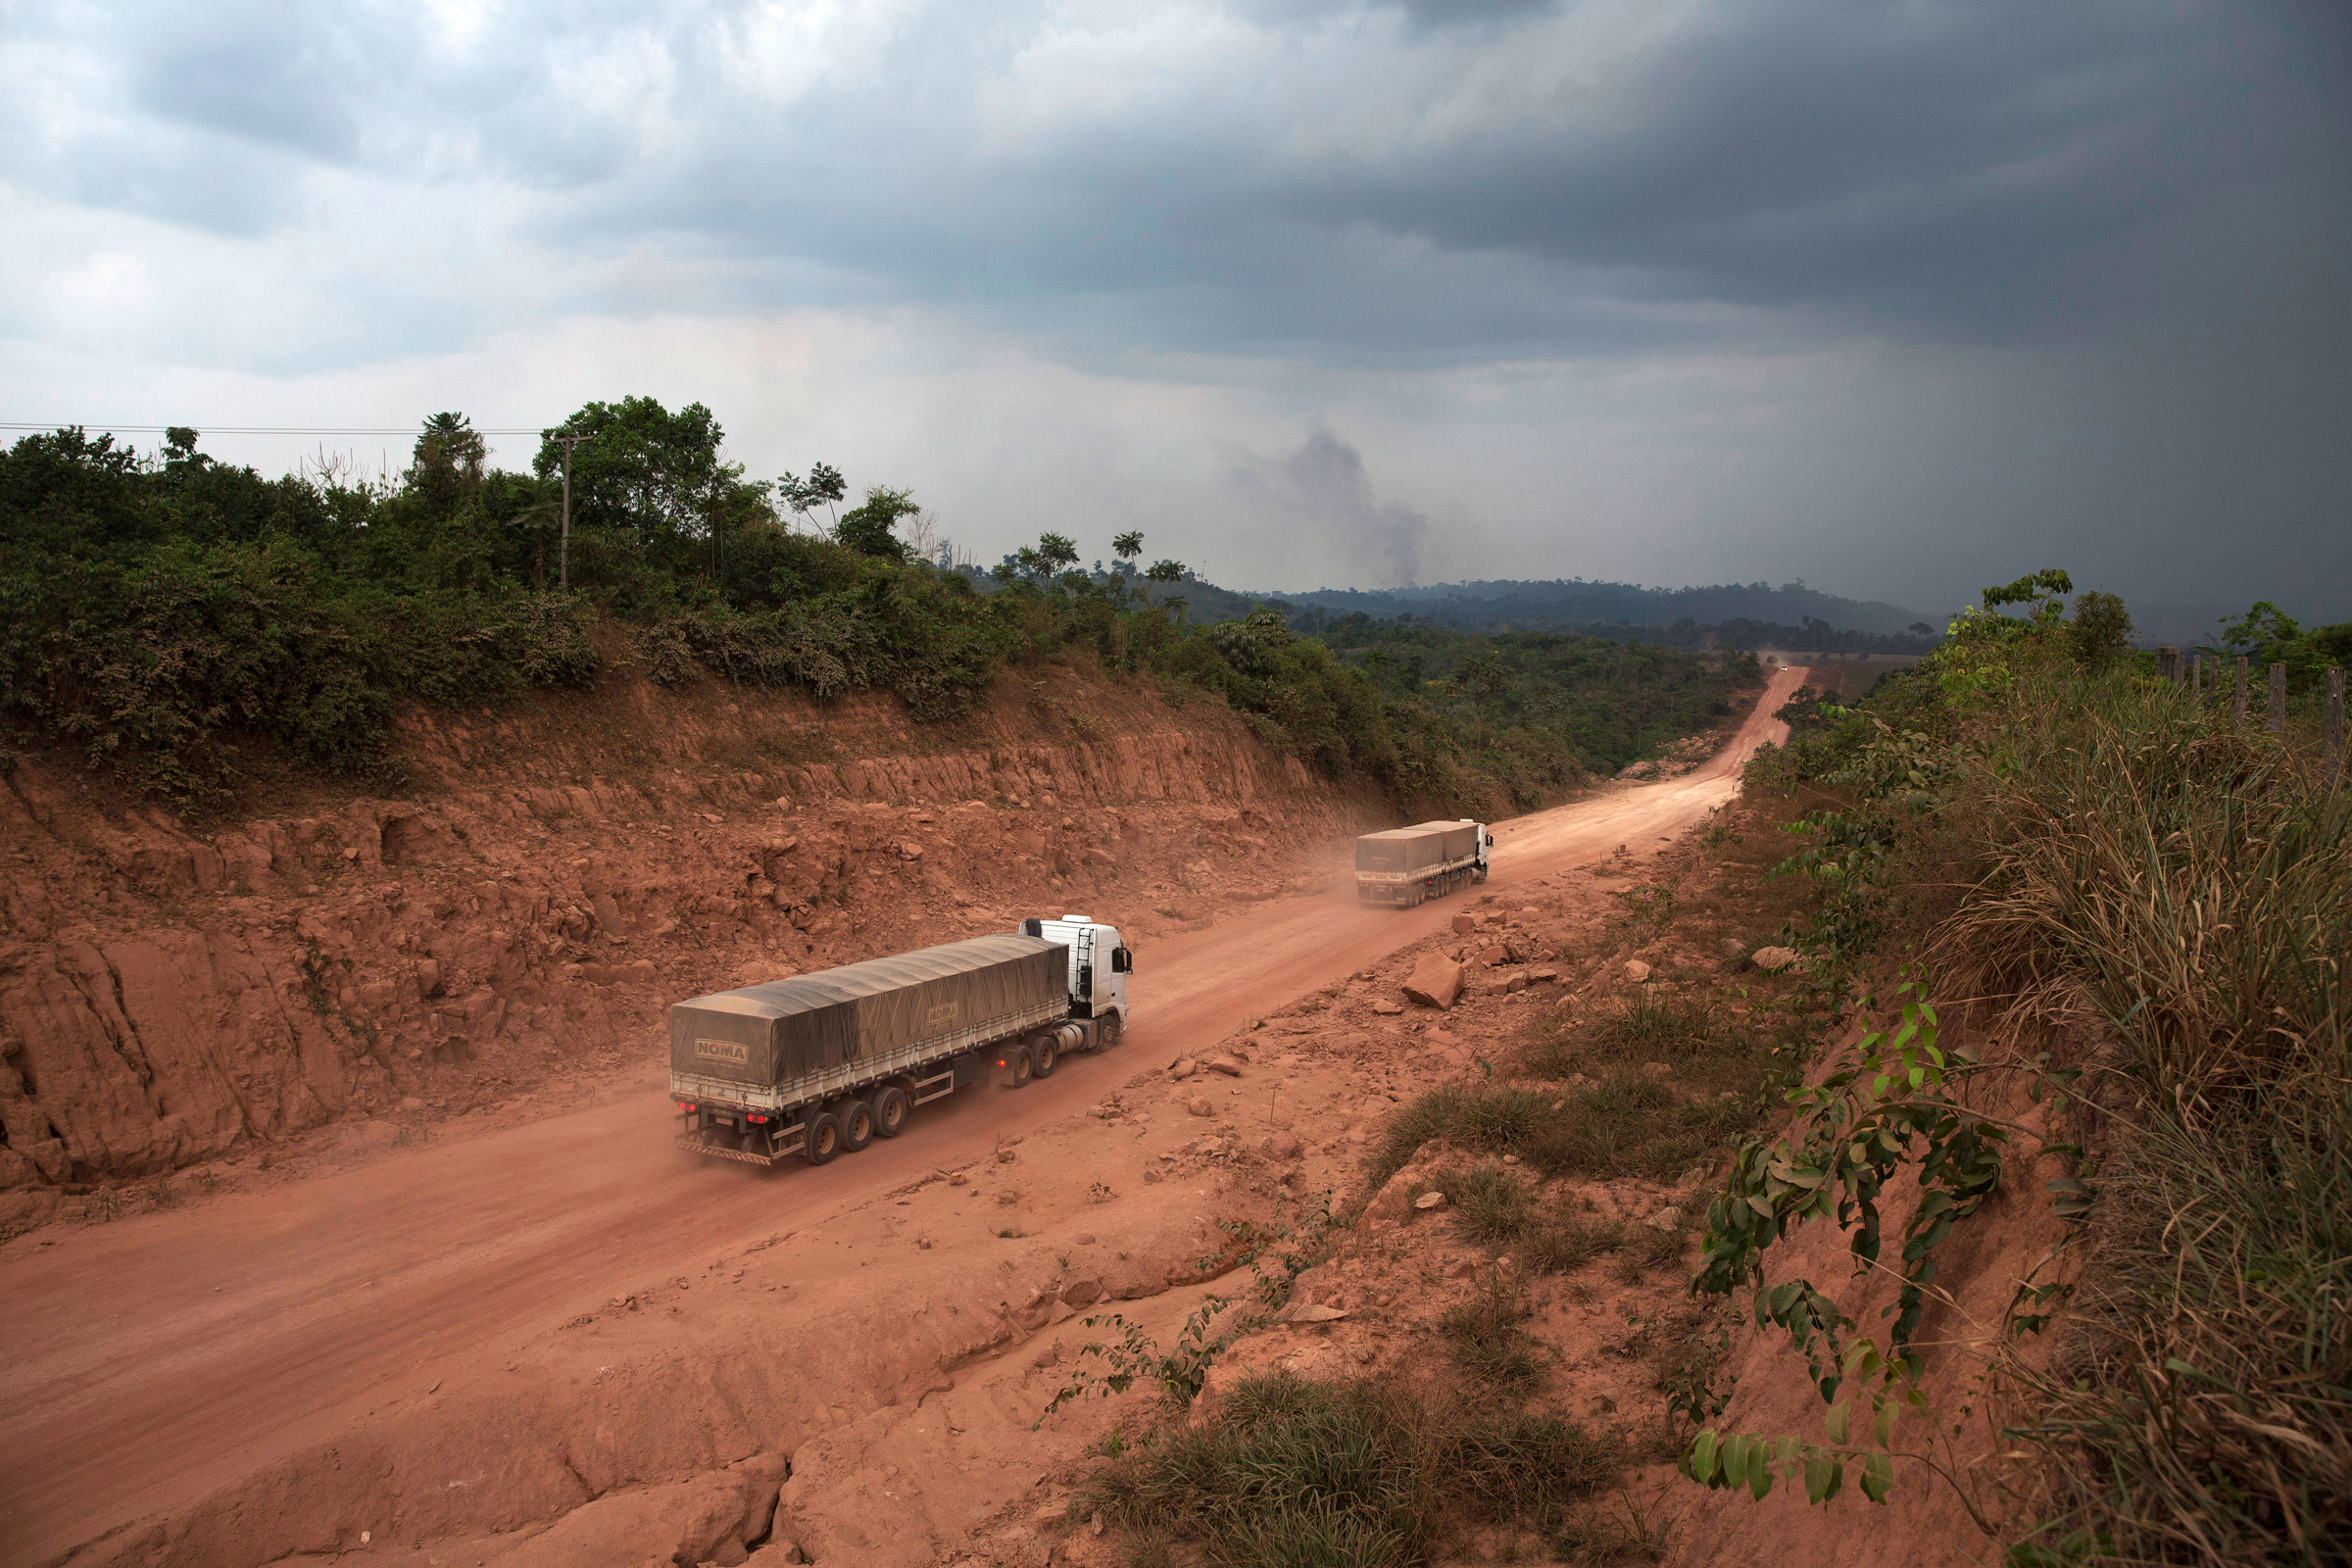 Trucks make their way down an unpaved stretch of BR-163 close to Novo Progresso, Brazil, Sept. 25, 2014. Long stretches of the road through the Amazon are still unpaved, with mud and potholes among the issues facing drivers. ?This place is like a little bit of hell,? said Eduardo Pimentel, a truck driver. (Lalo de Almeida/The New York Times)